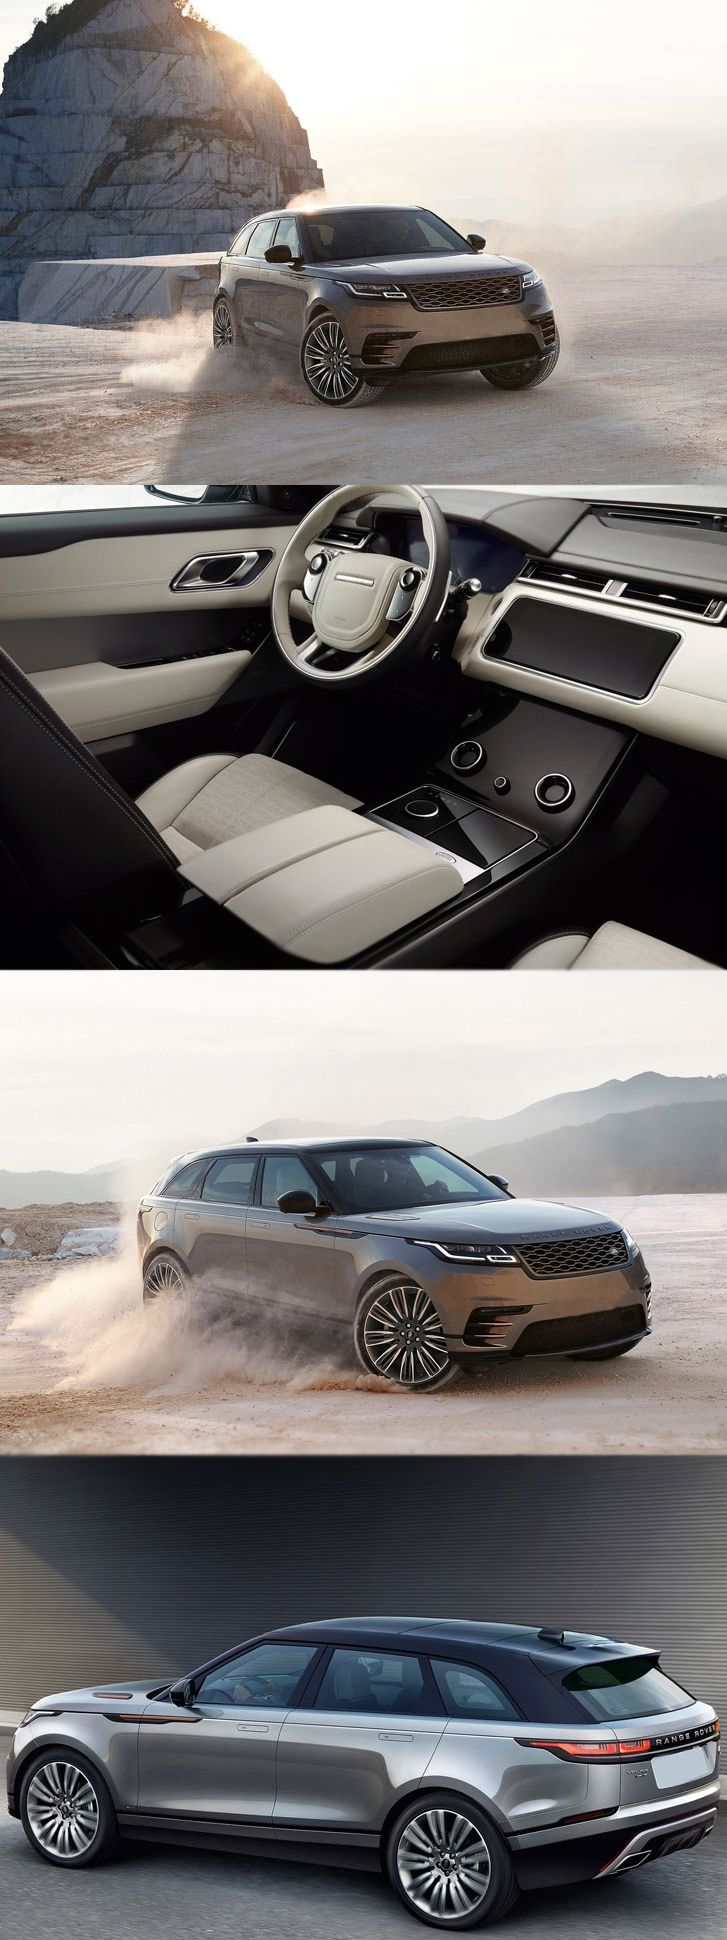 THE NEW RANGE ROVER VELAR HAS ITS SPOT BETWEEN THE EVOQUE AND THE RANGE ROVER SPORT, VALUED FROM £44,830 For more detail:https://www.rangerovergearbox.co.uk/blog/new-range-rover-velar-spot-evoque-range-rover-sport-valued-44830/